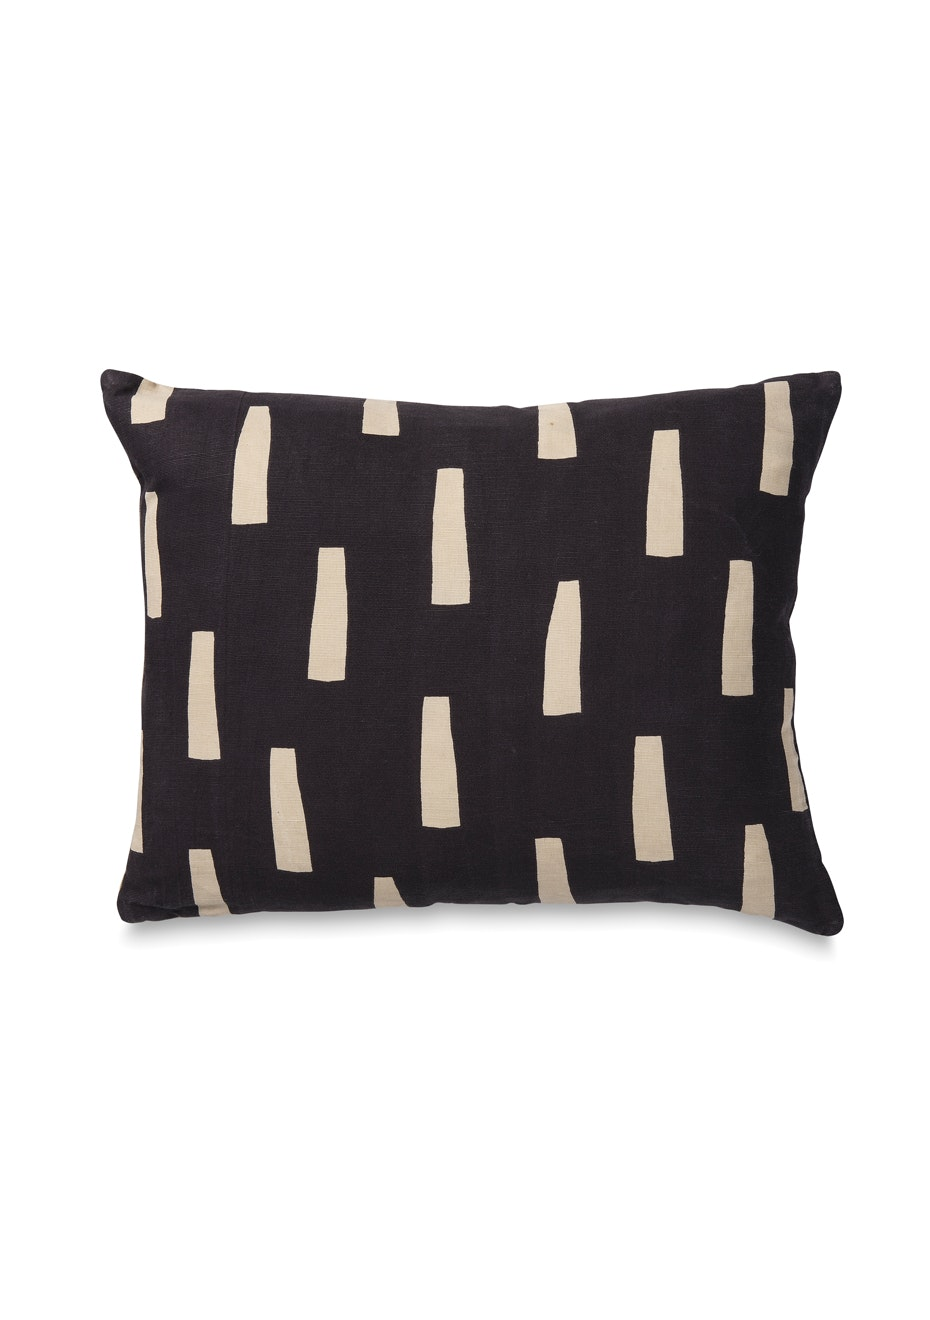 Citta Design - Dash Reversible Cushion Cover Cocoa/Camel